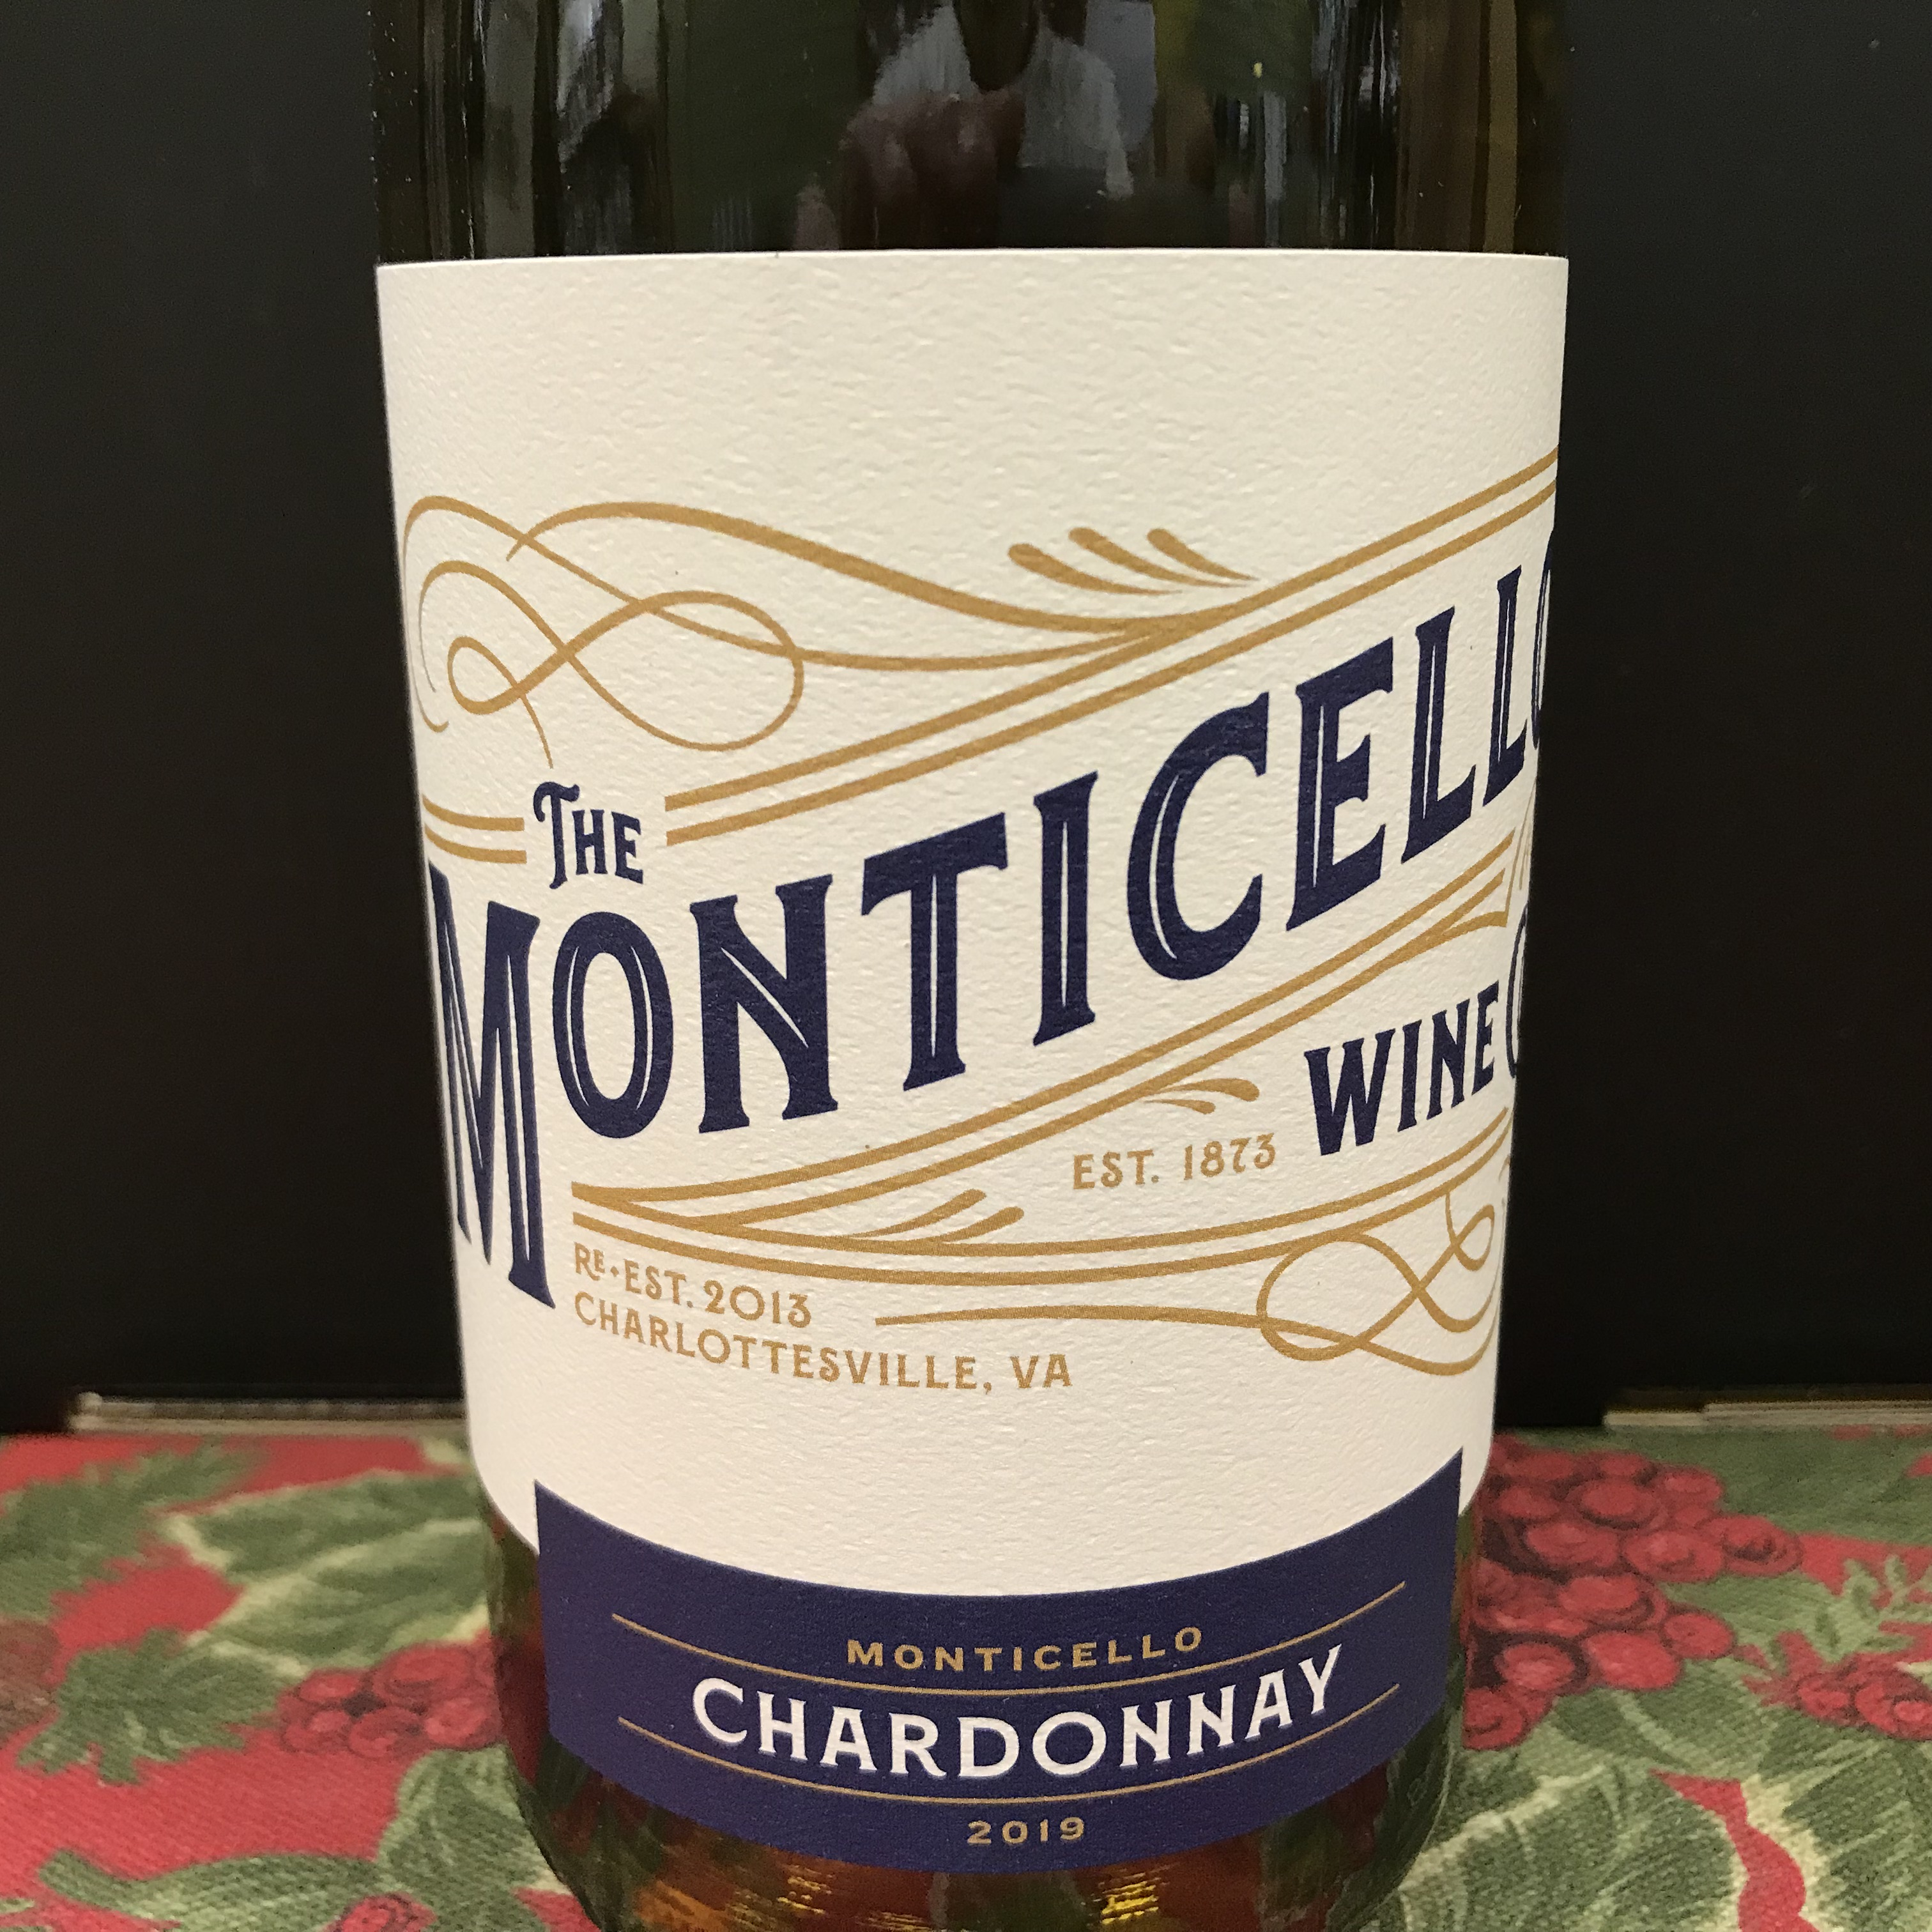 Monticello Wine Co. Chardonnay 2019